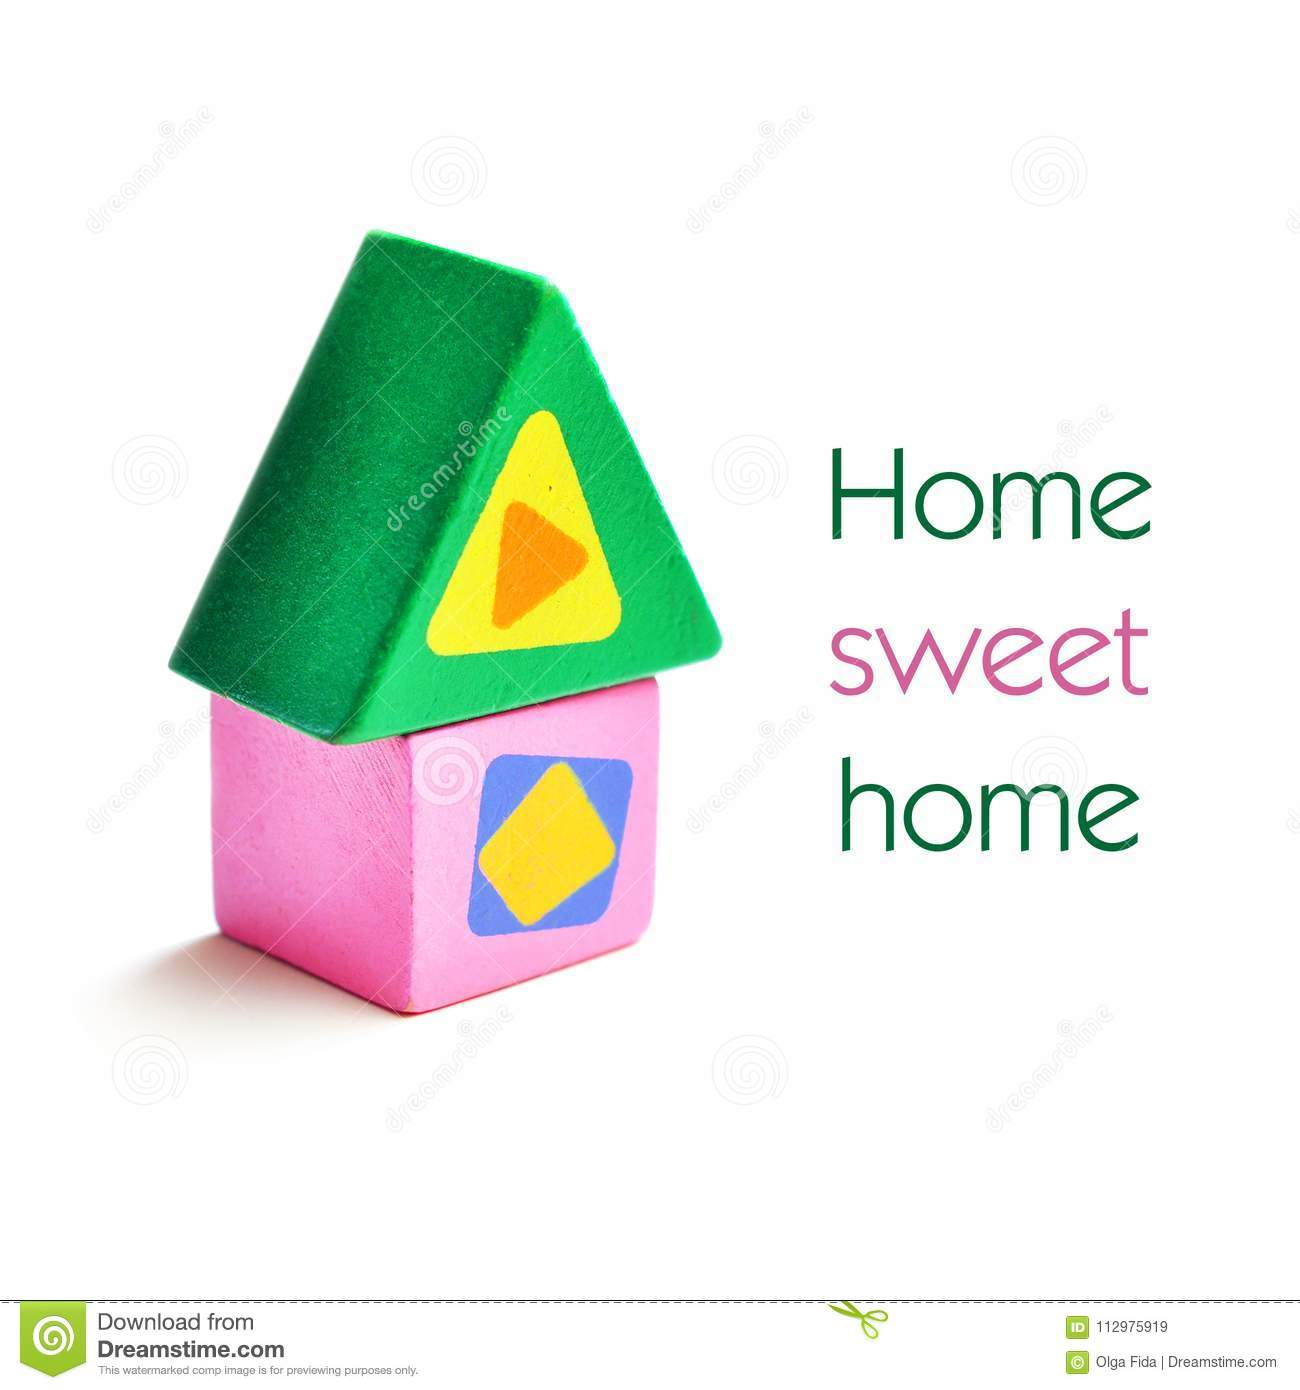 Toy, wooden, colored house